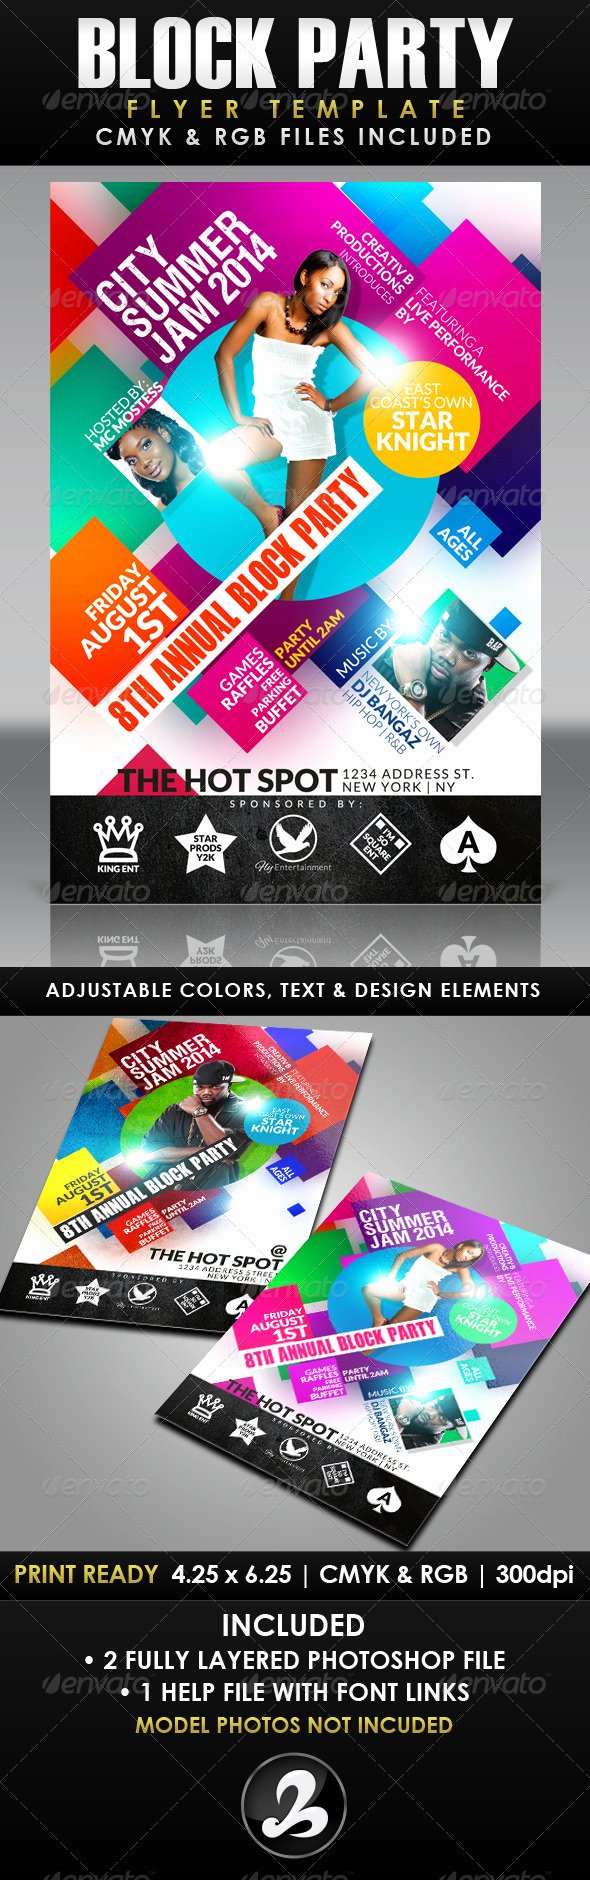 Block Party Flyer Templates Awesome Block Party Flyer Template Psd